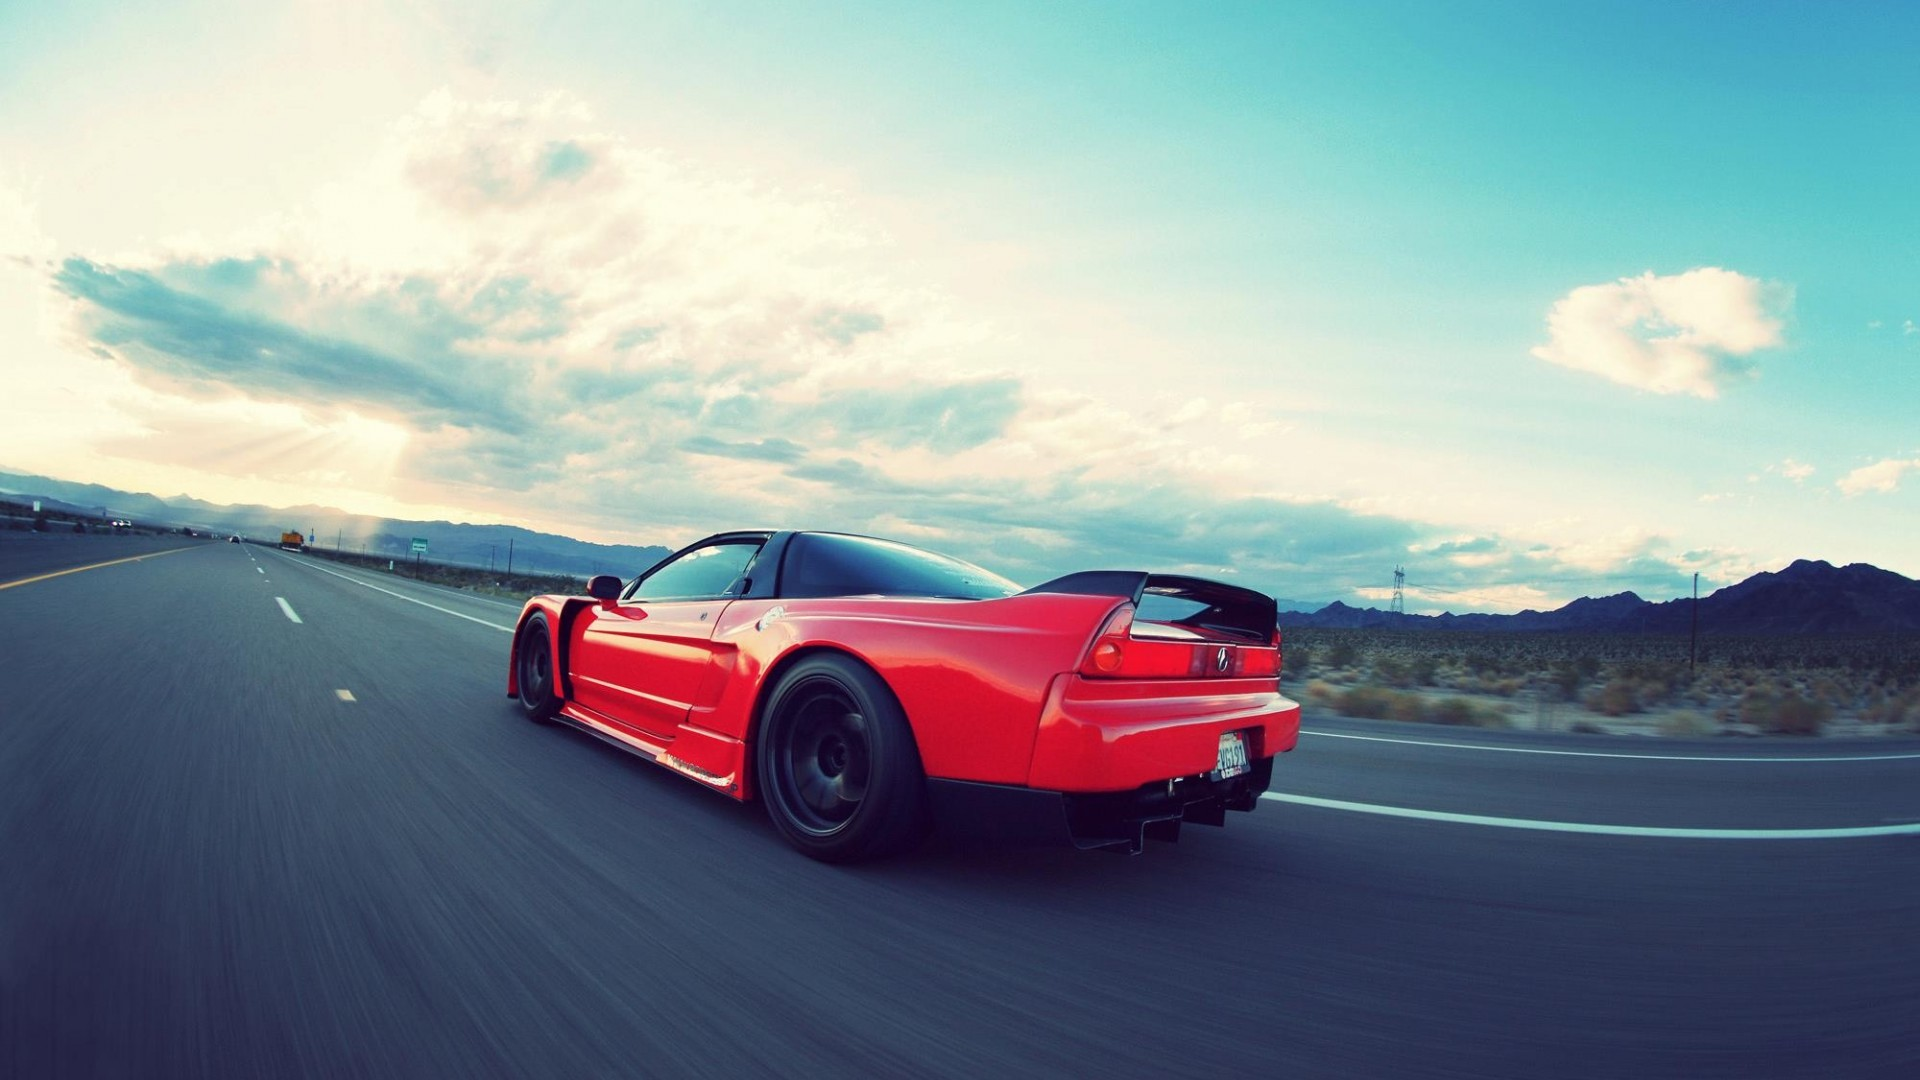 honda nsx wallpapers high resolution and quality